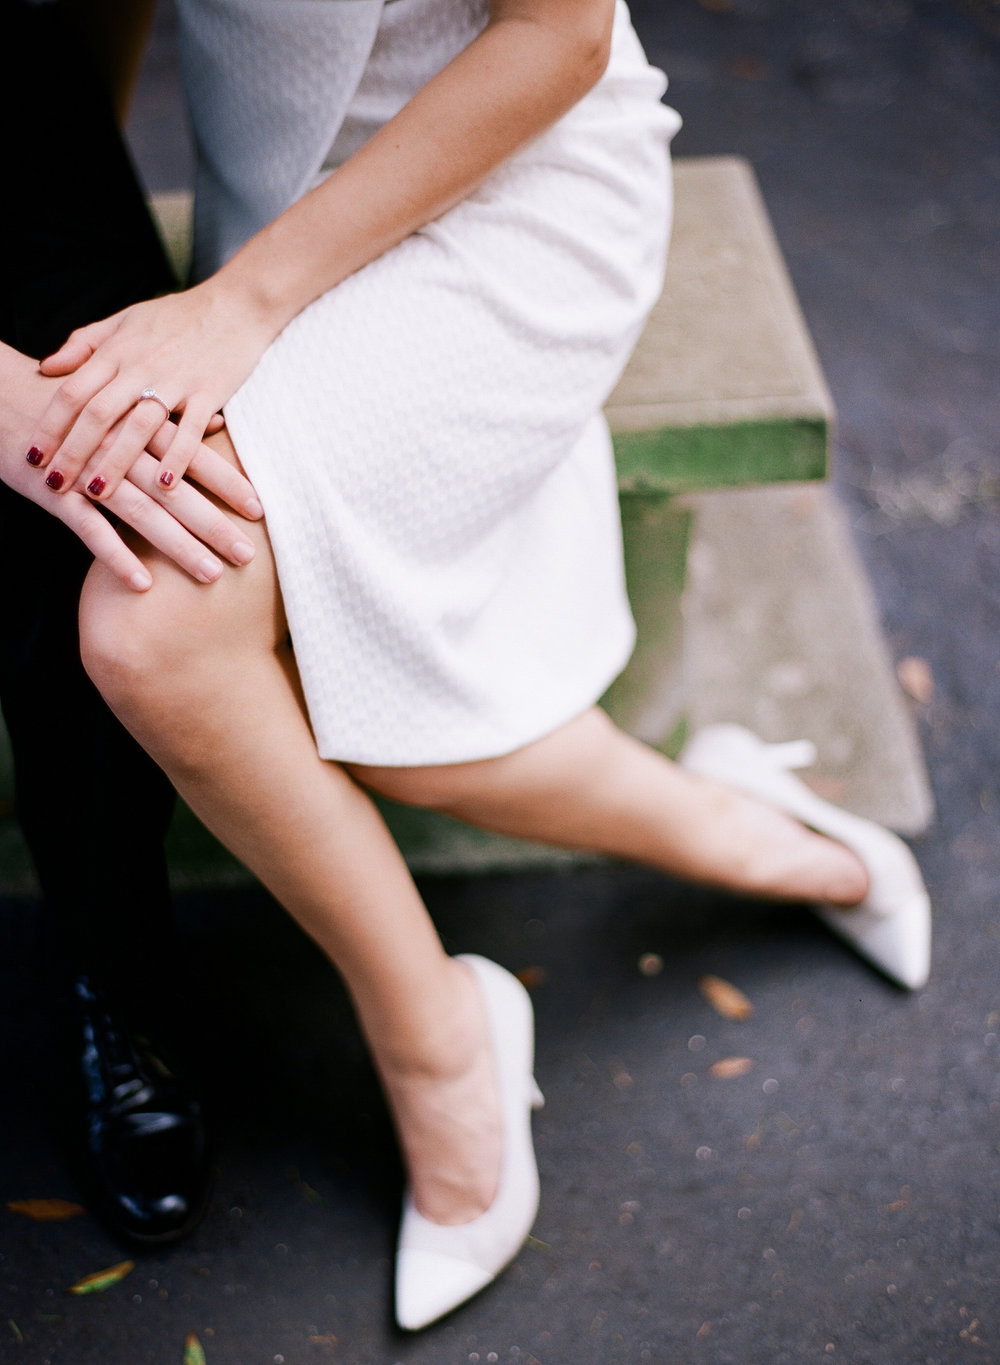 st-augustine-engagement-photographer-shannon-griffin-kathryn-and-chris-37.jpg